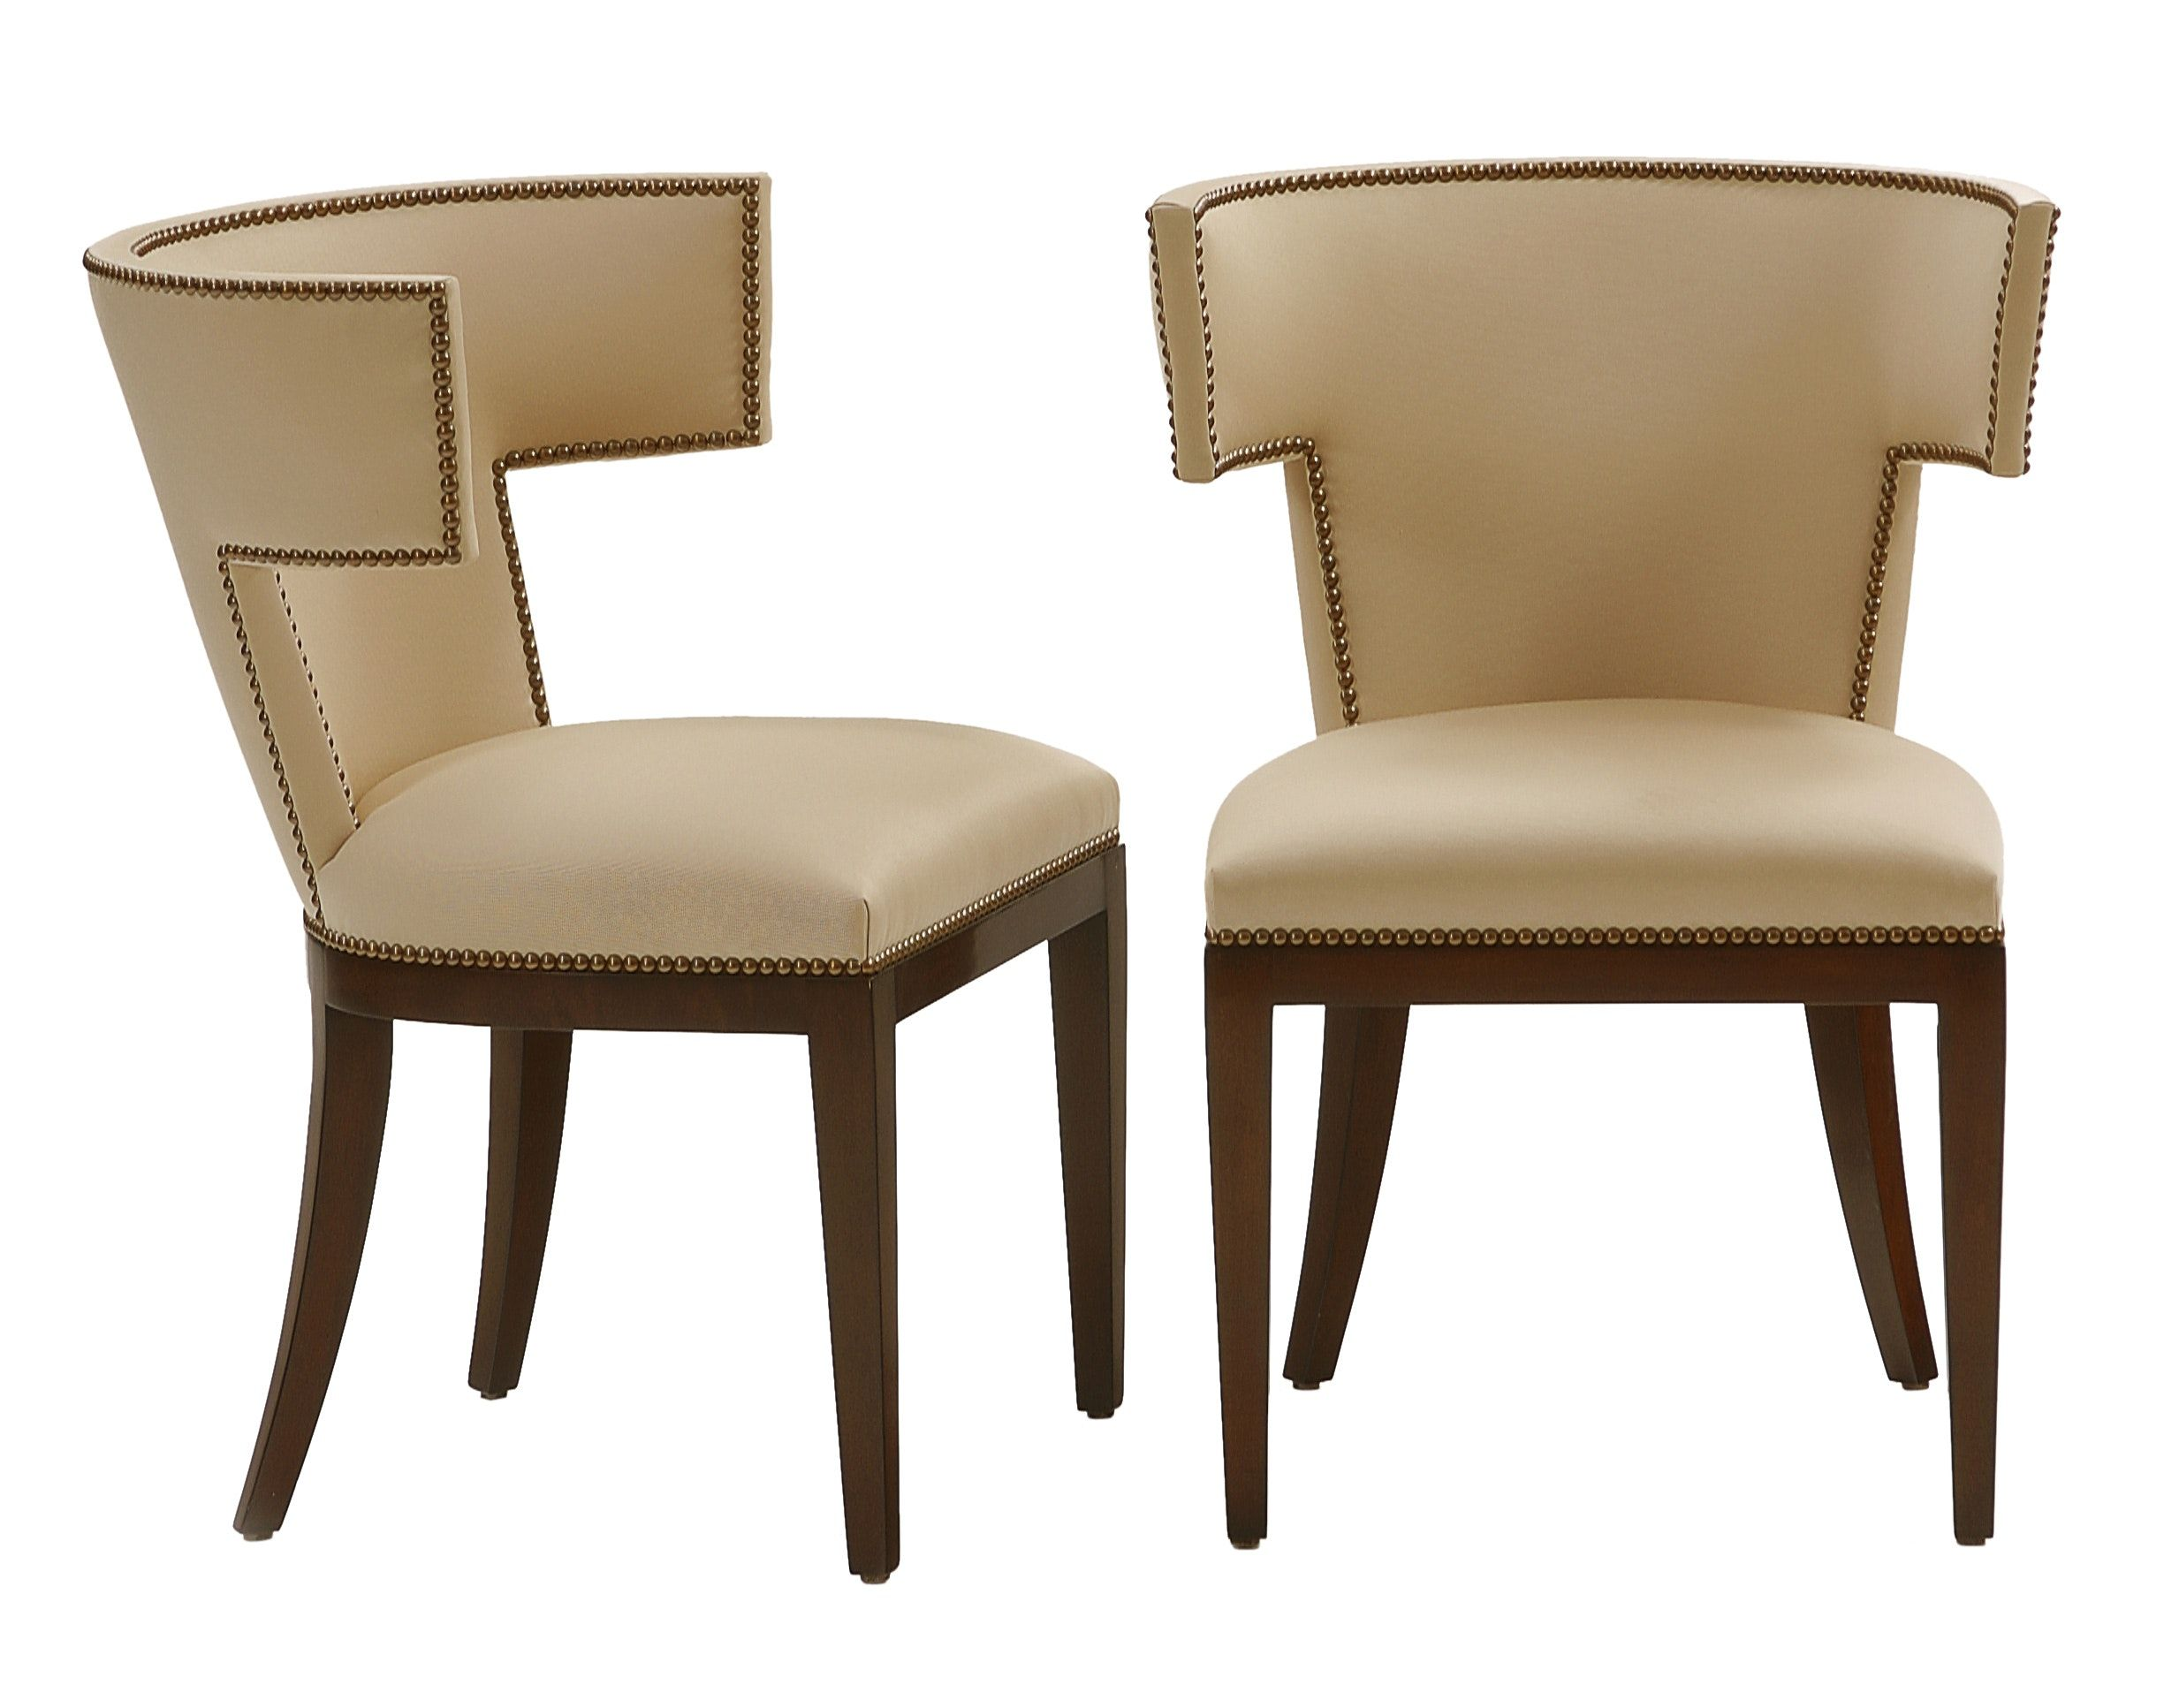 Designs Of Dining Chairs